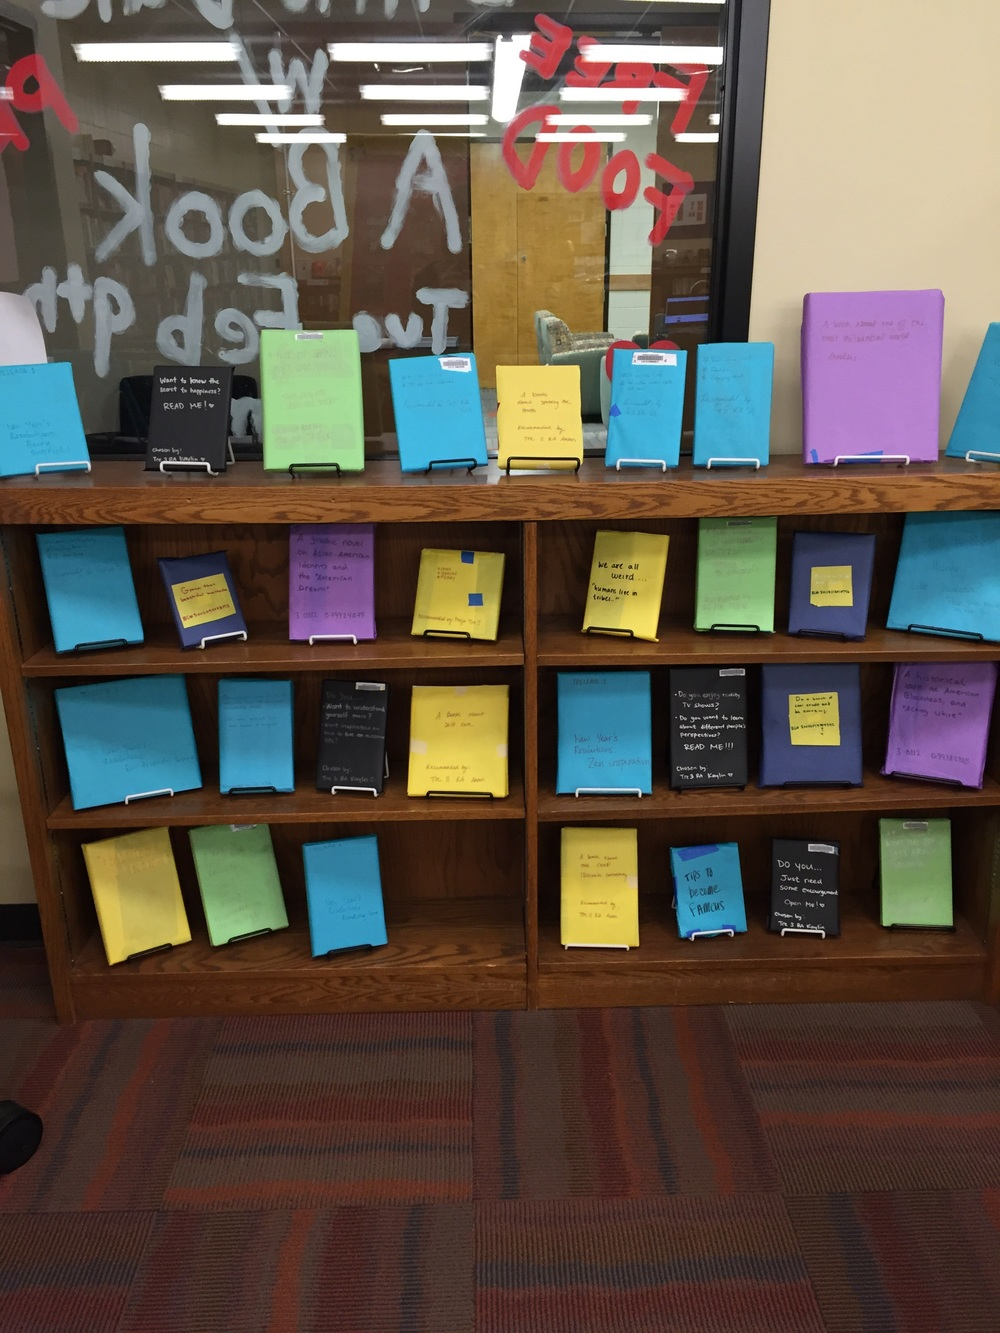 The Blind Date with a Book display